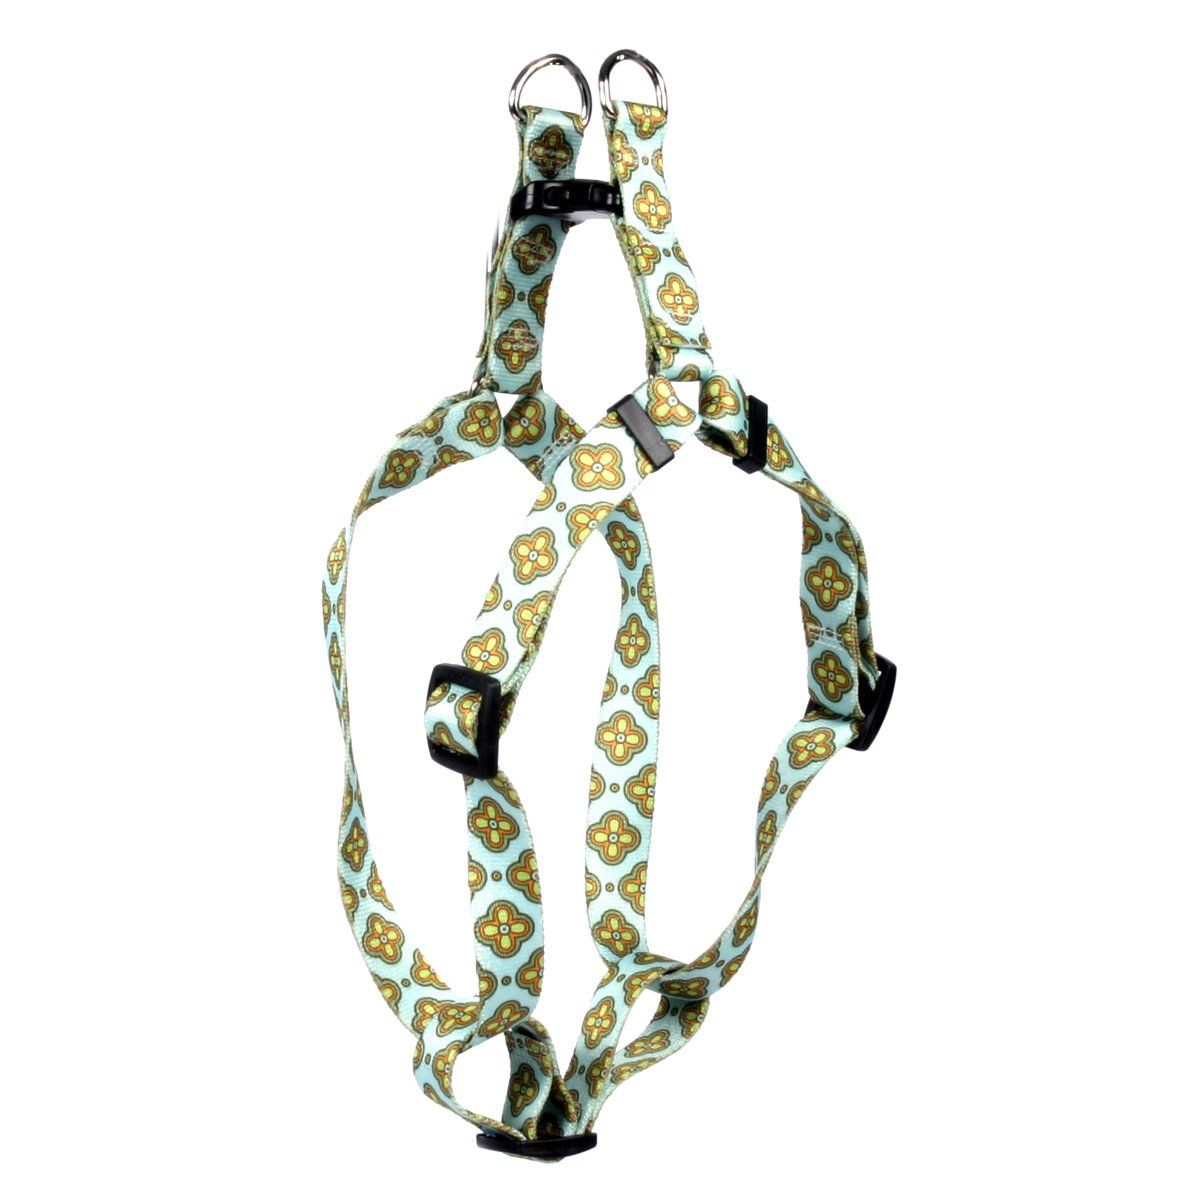 Yellow Dog Design Cleo Blue Step-in Dog Harness 3/4'' Wide and Fits Chest Circumference of 15 to 25'', Medium